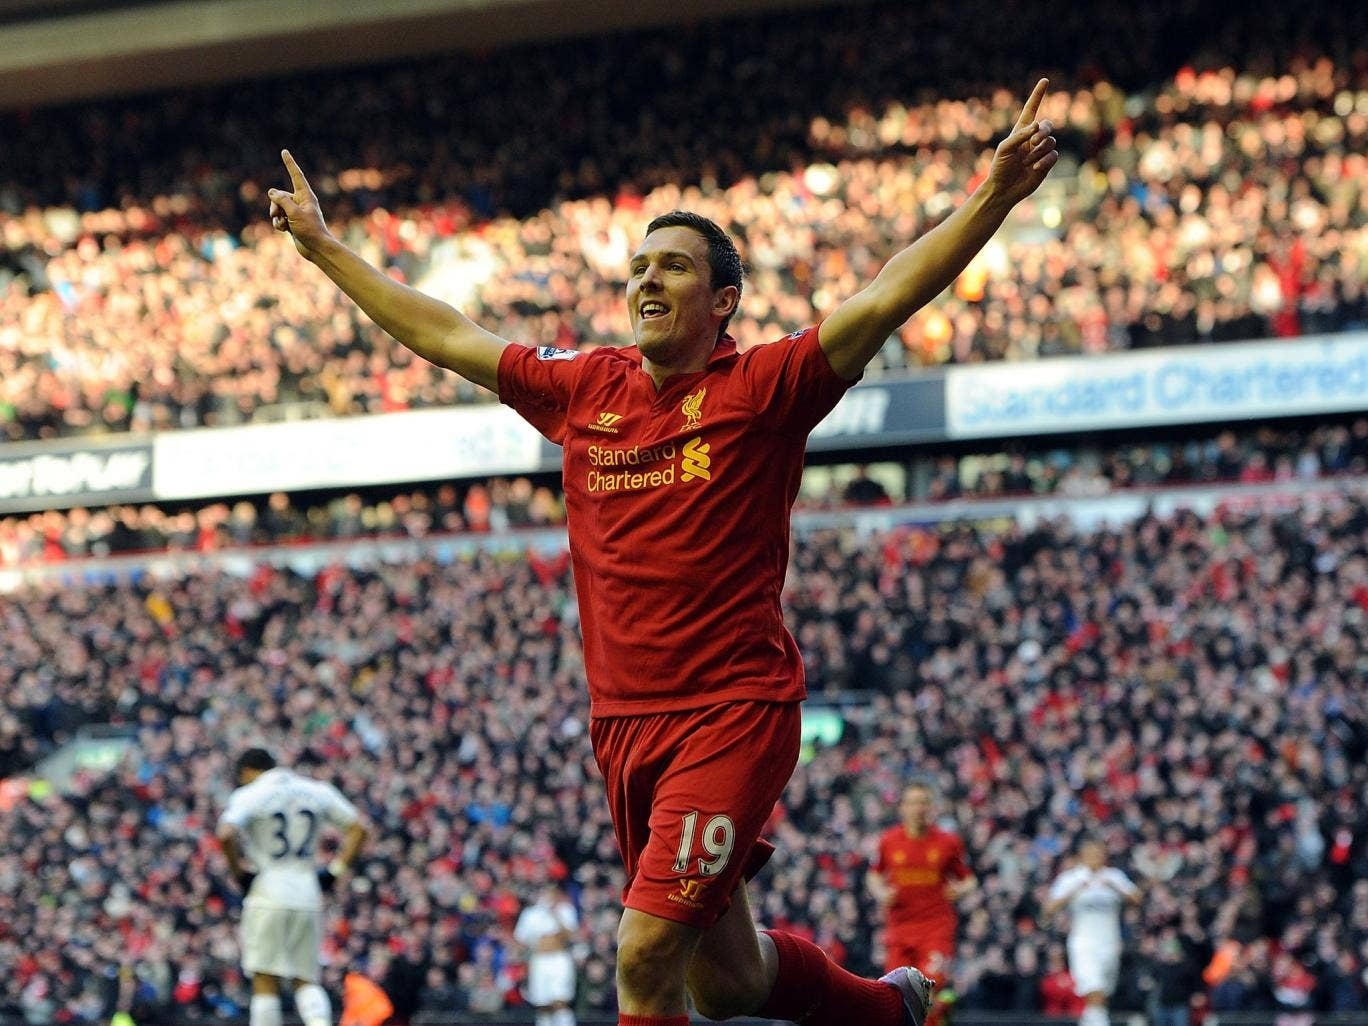 Stewart Downing of Liverpool celebrates after scoring against Spurs